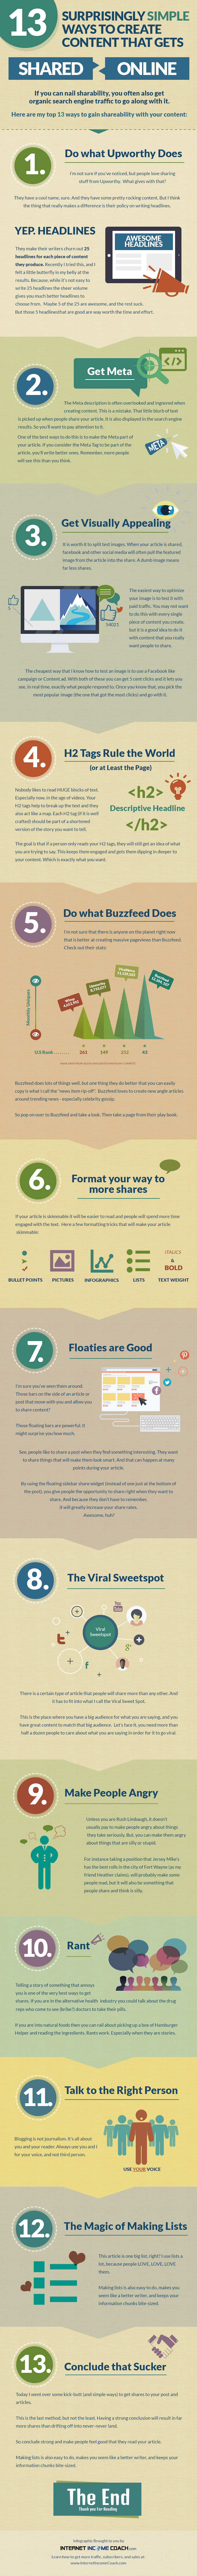 Create Shareable Content Infographic